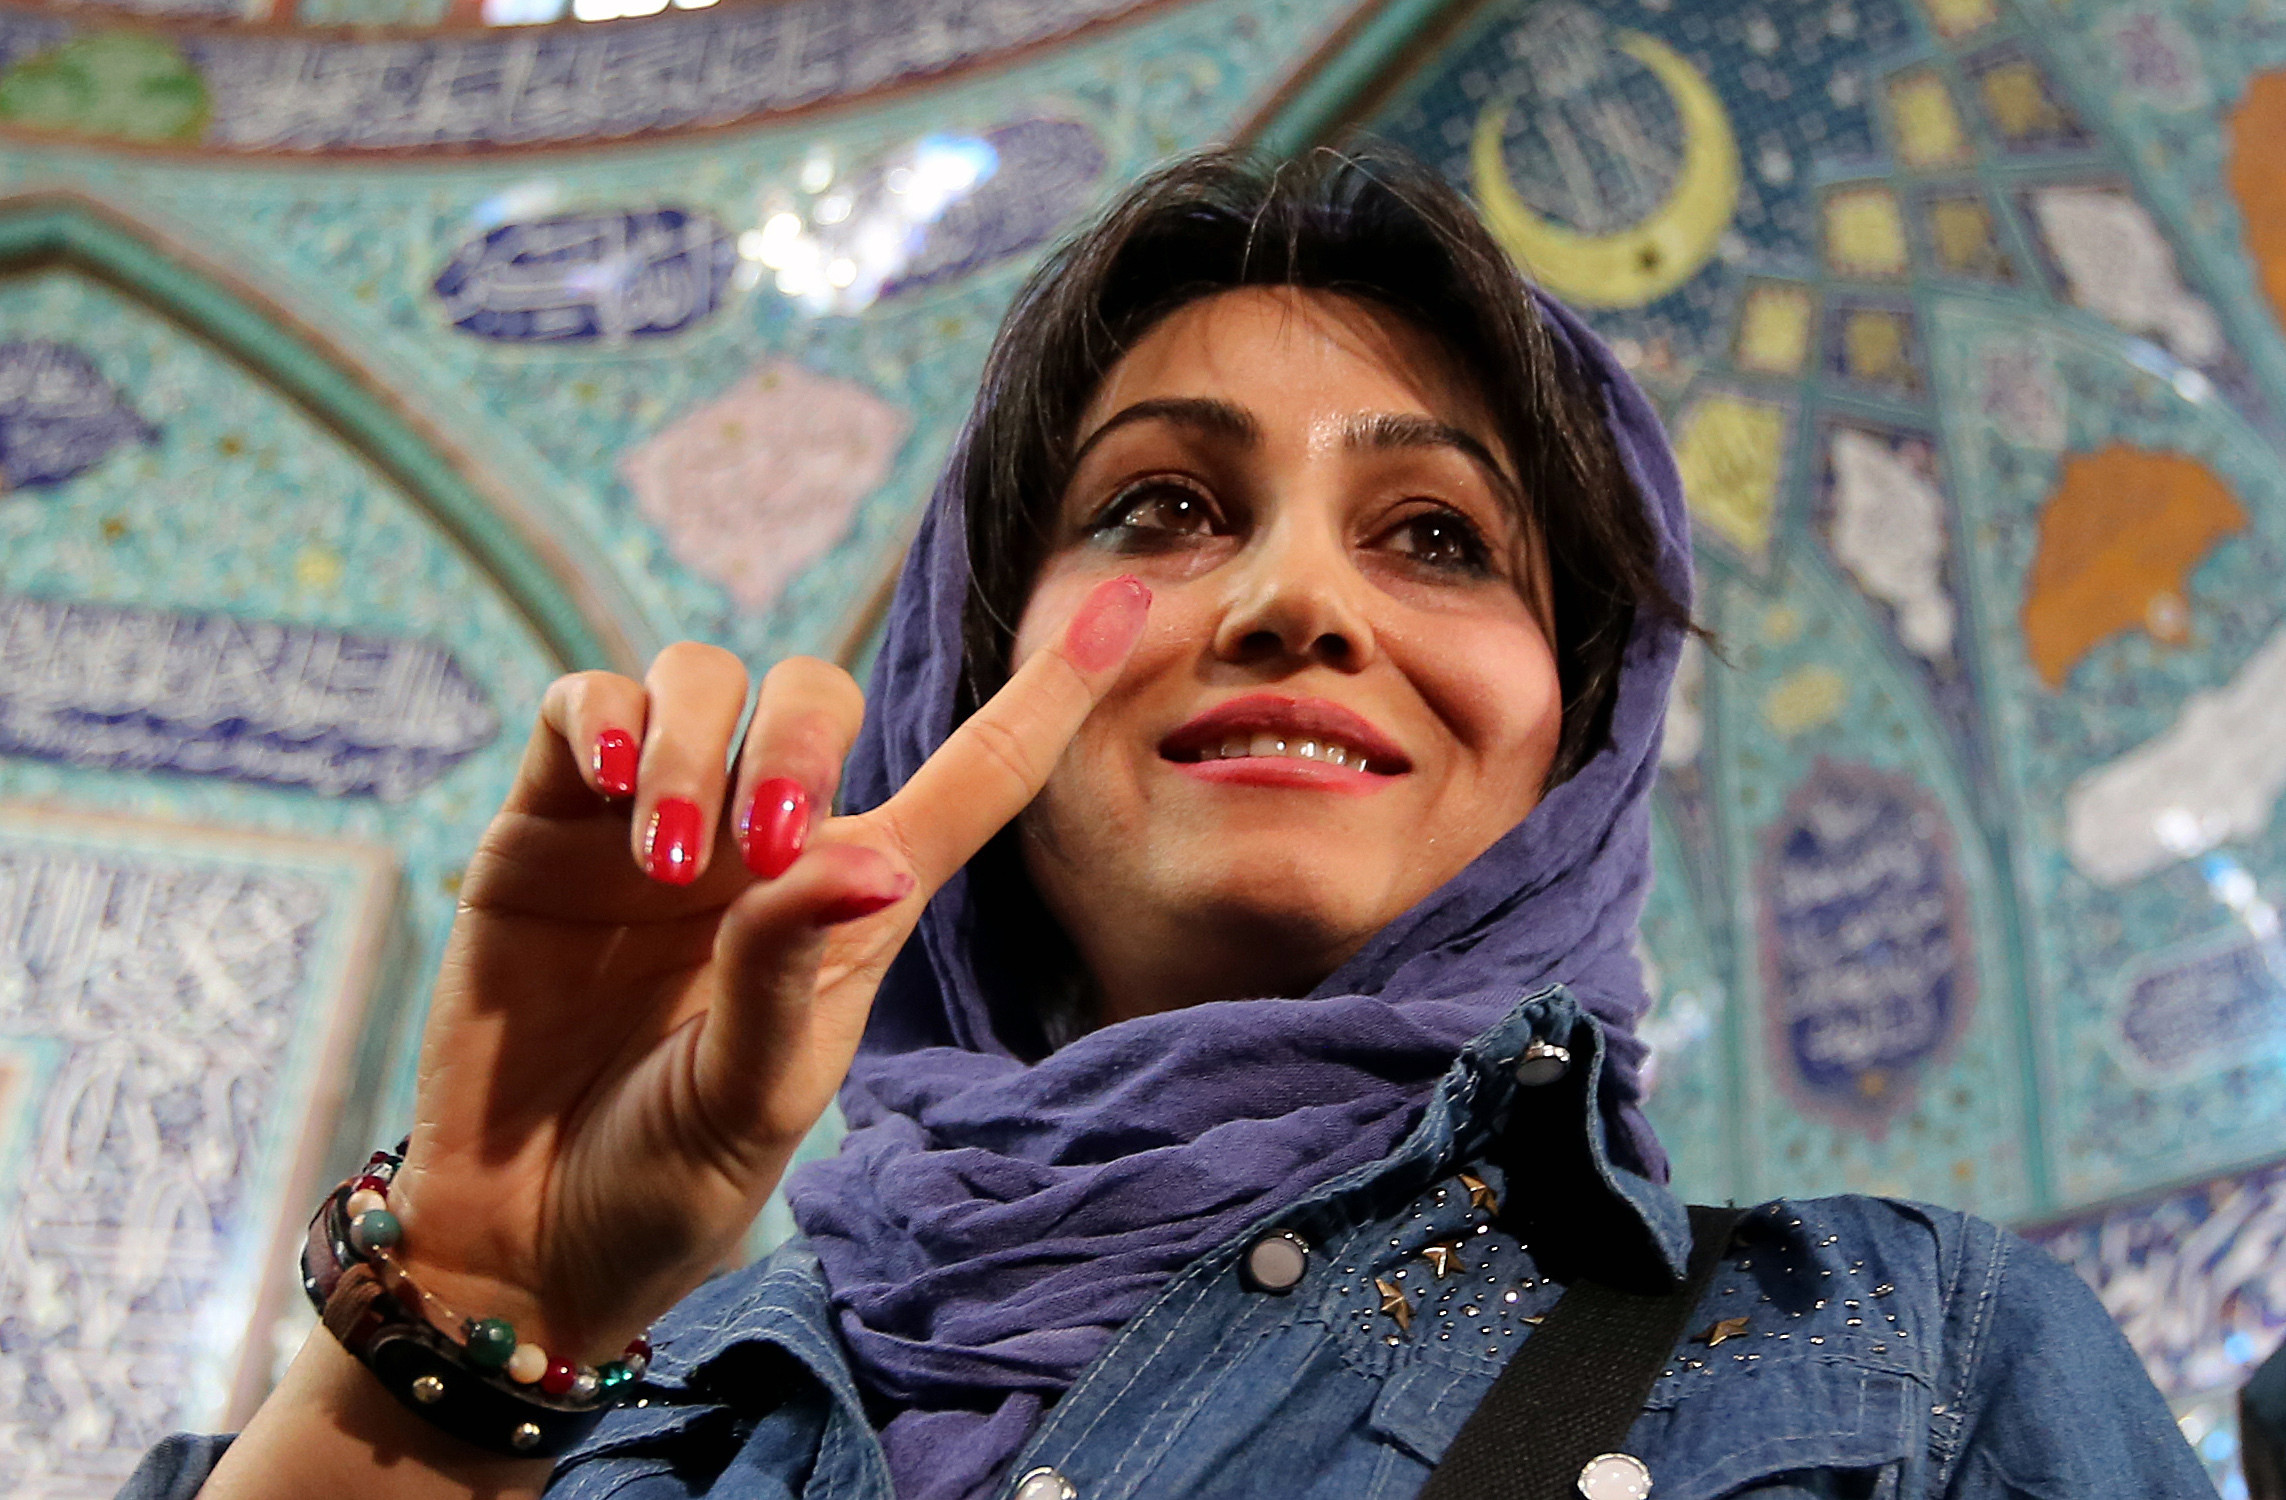 iran elections woman february 2016